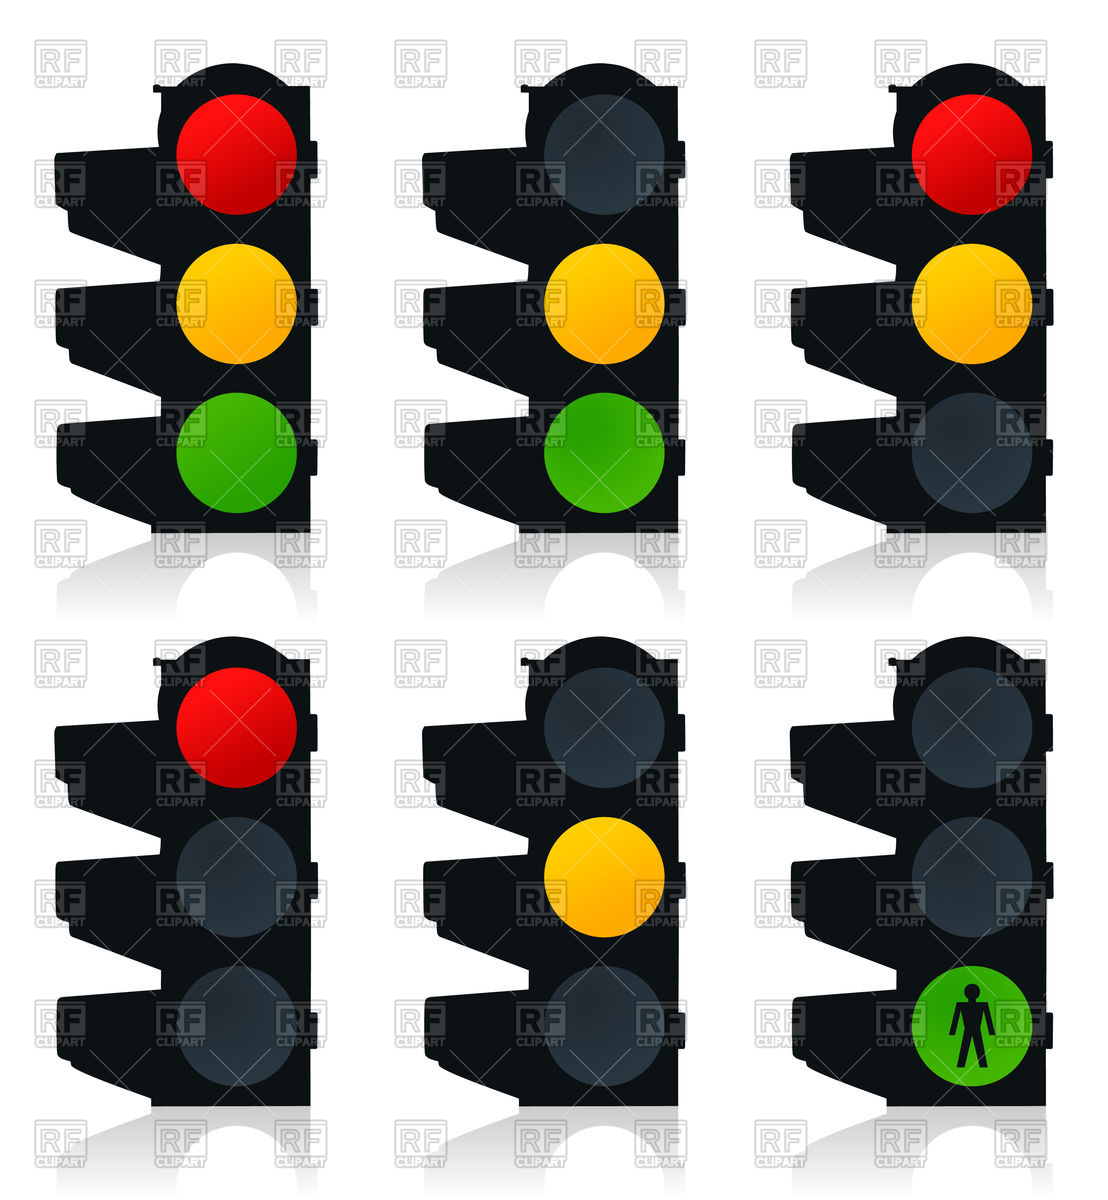 Icons of city traffic lights Vector Image #79832.